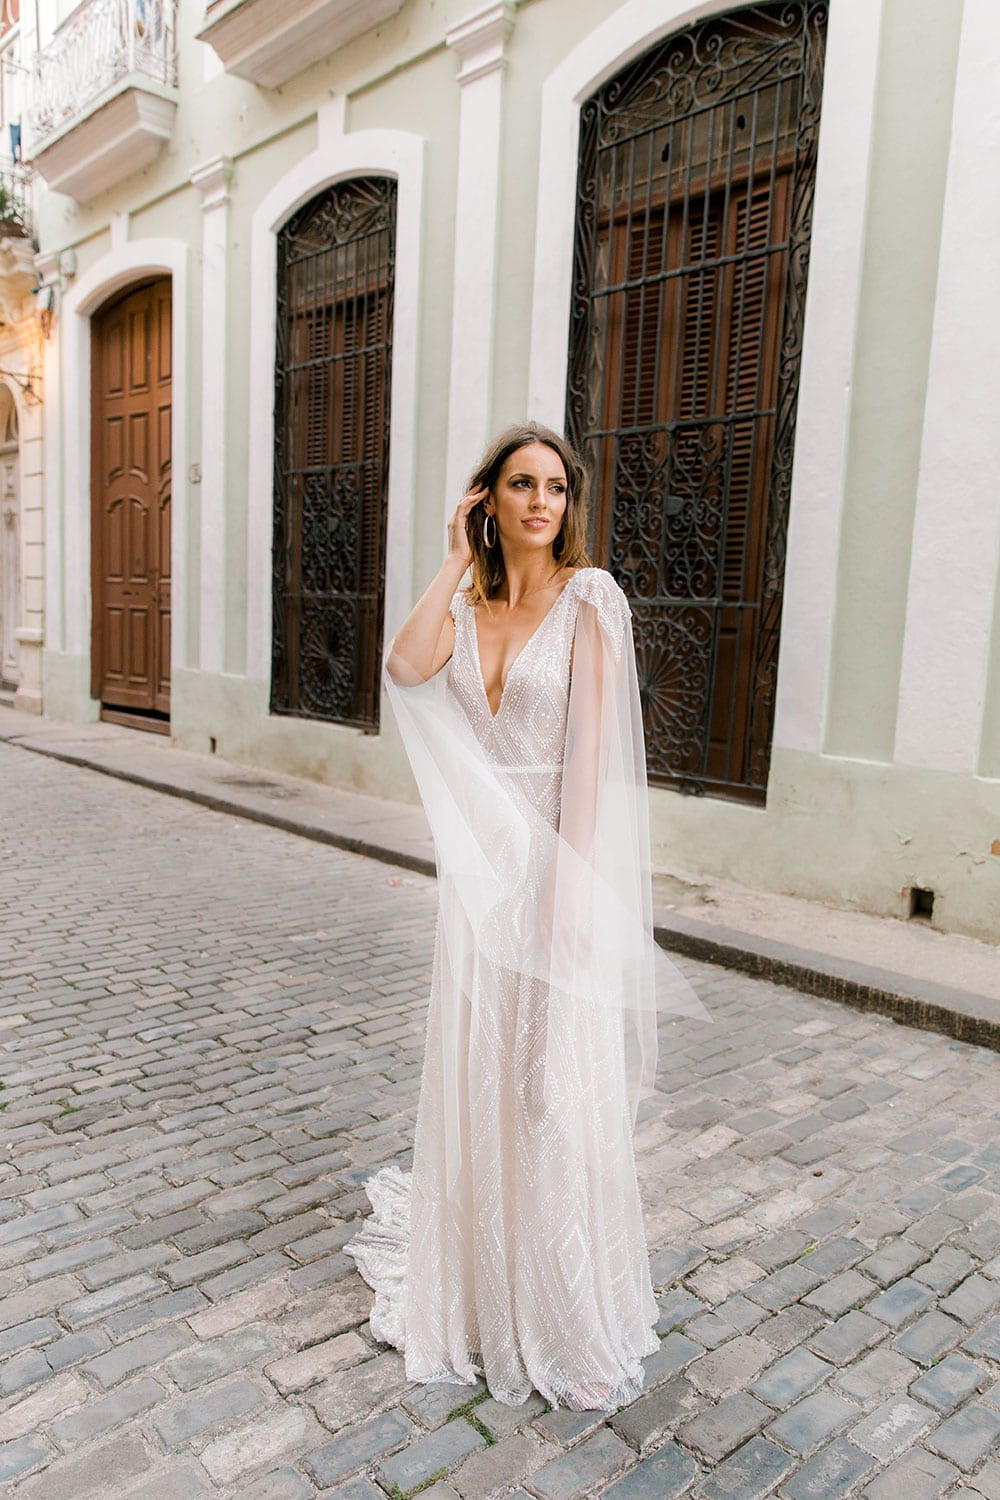 Model wearing Vinka Design Valentina Wedding dress with Deep V-Neck Beaded A-Line Gown on Cuba streets with wooden doors on building behind